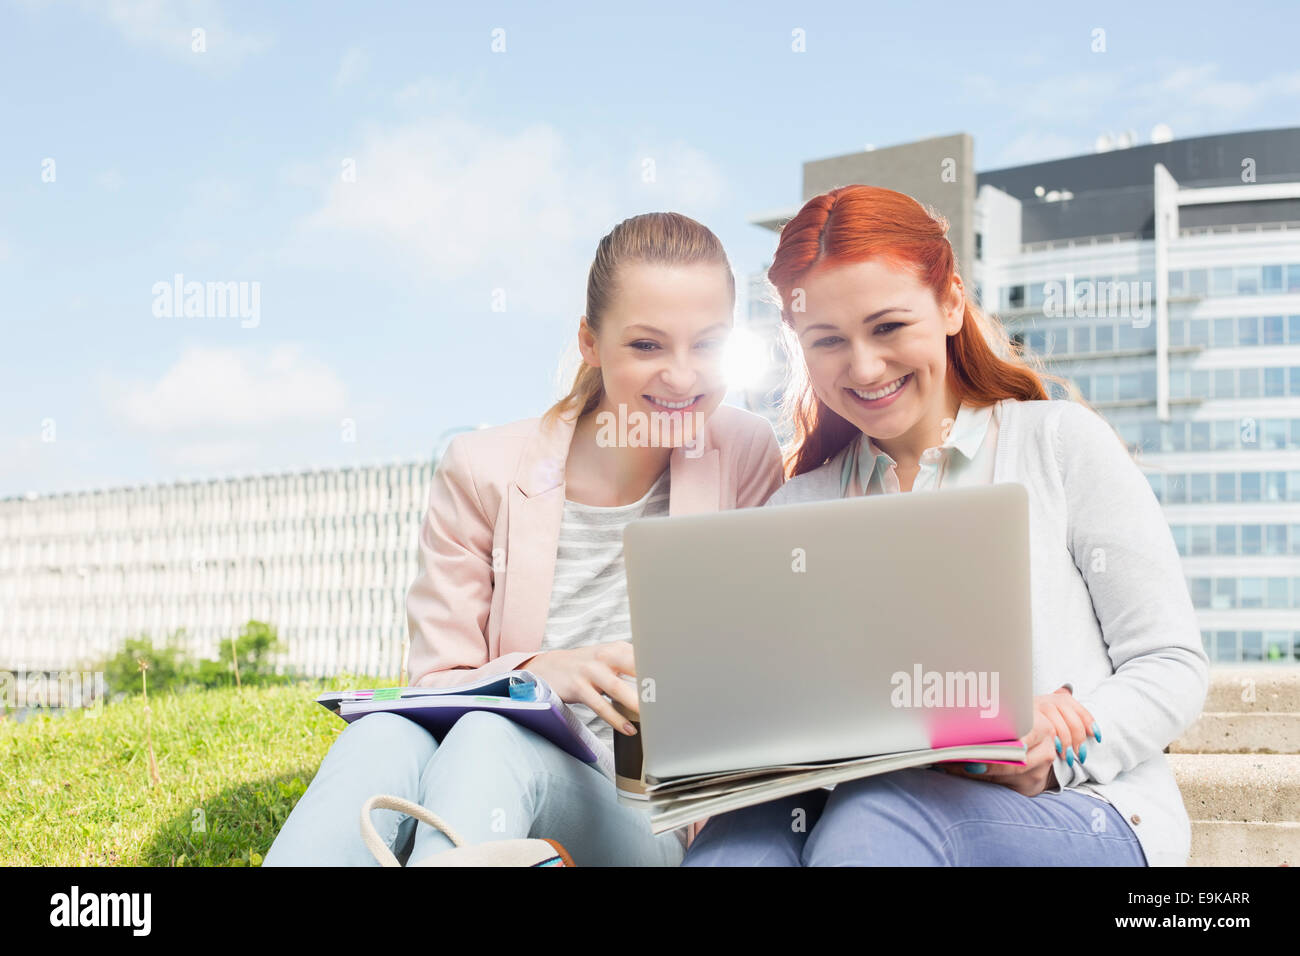 Smiling young university students using laptop with buildings in background - Stock Image